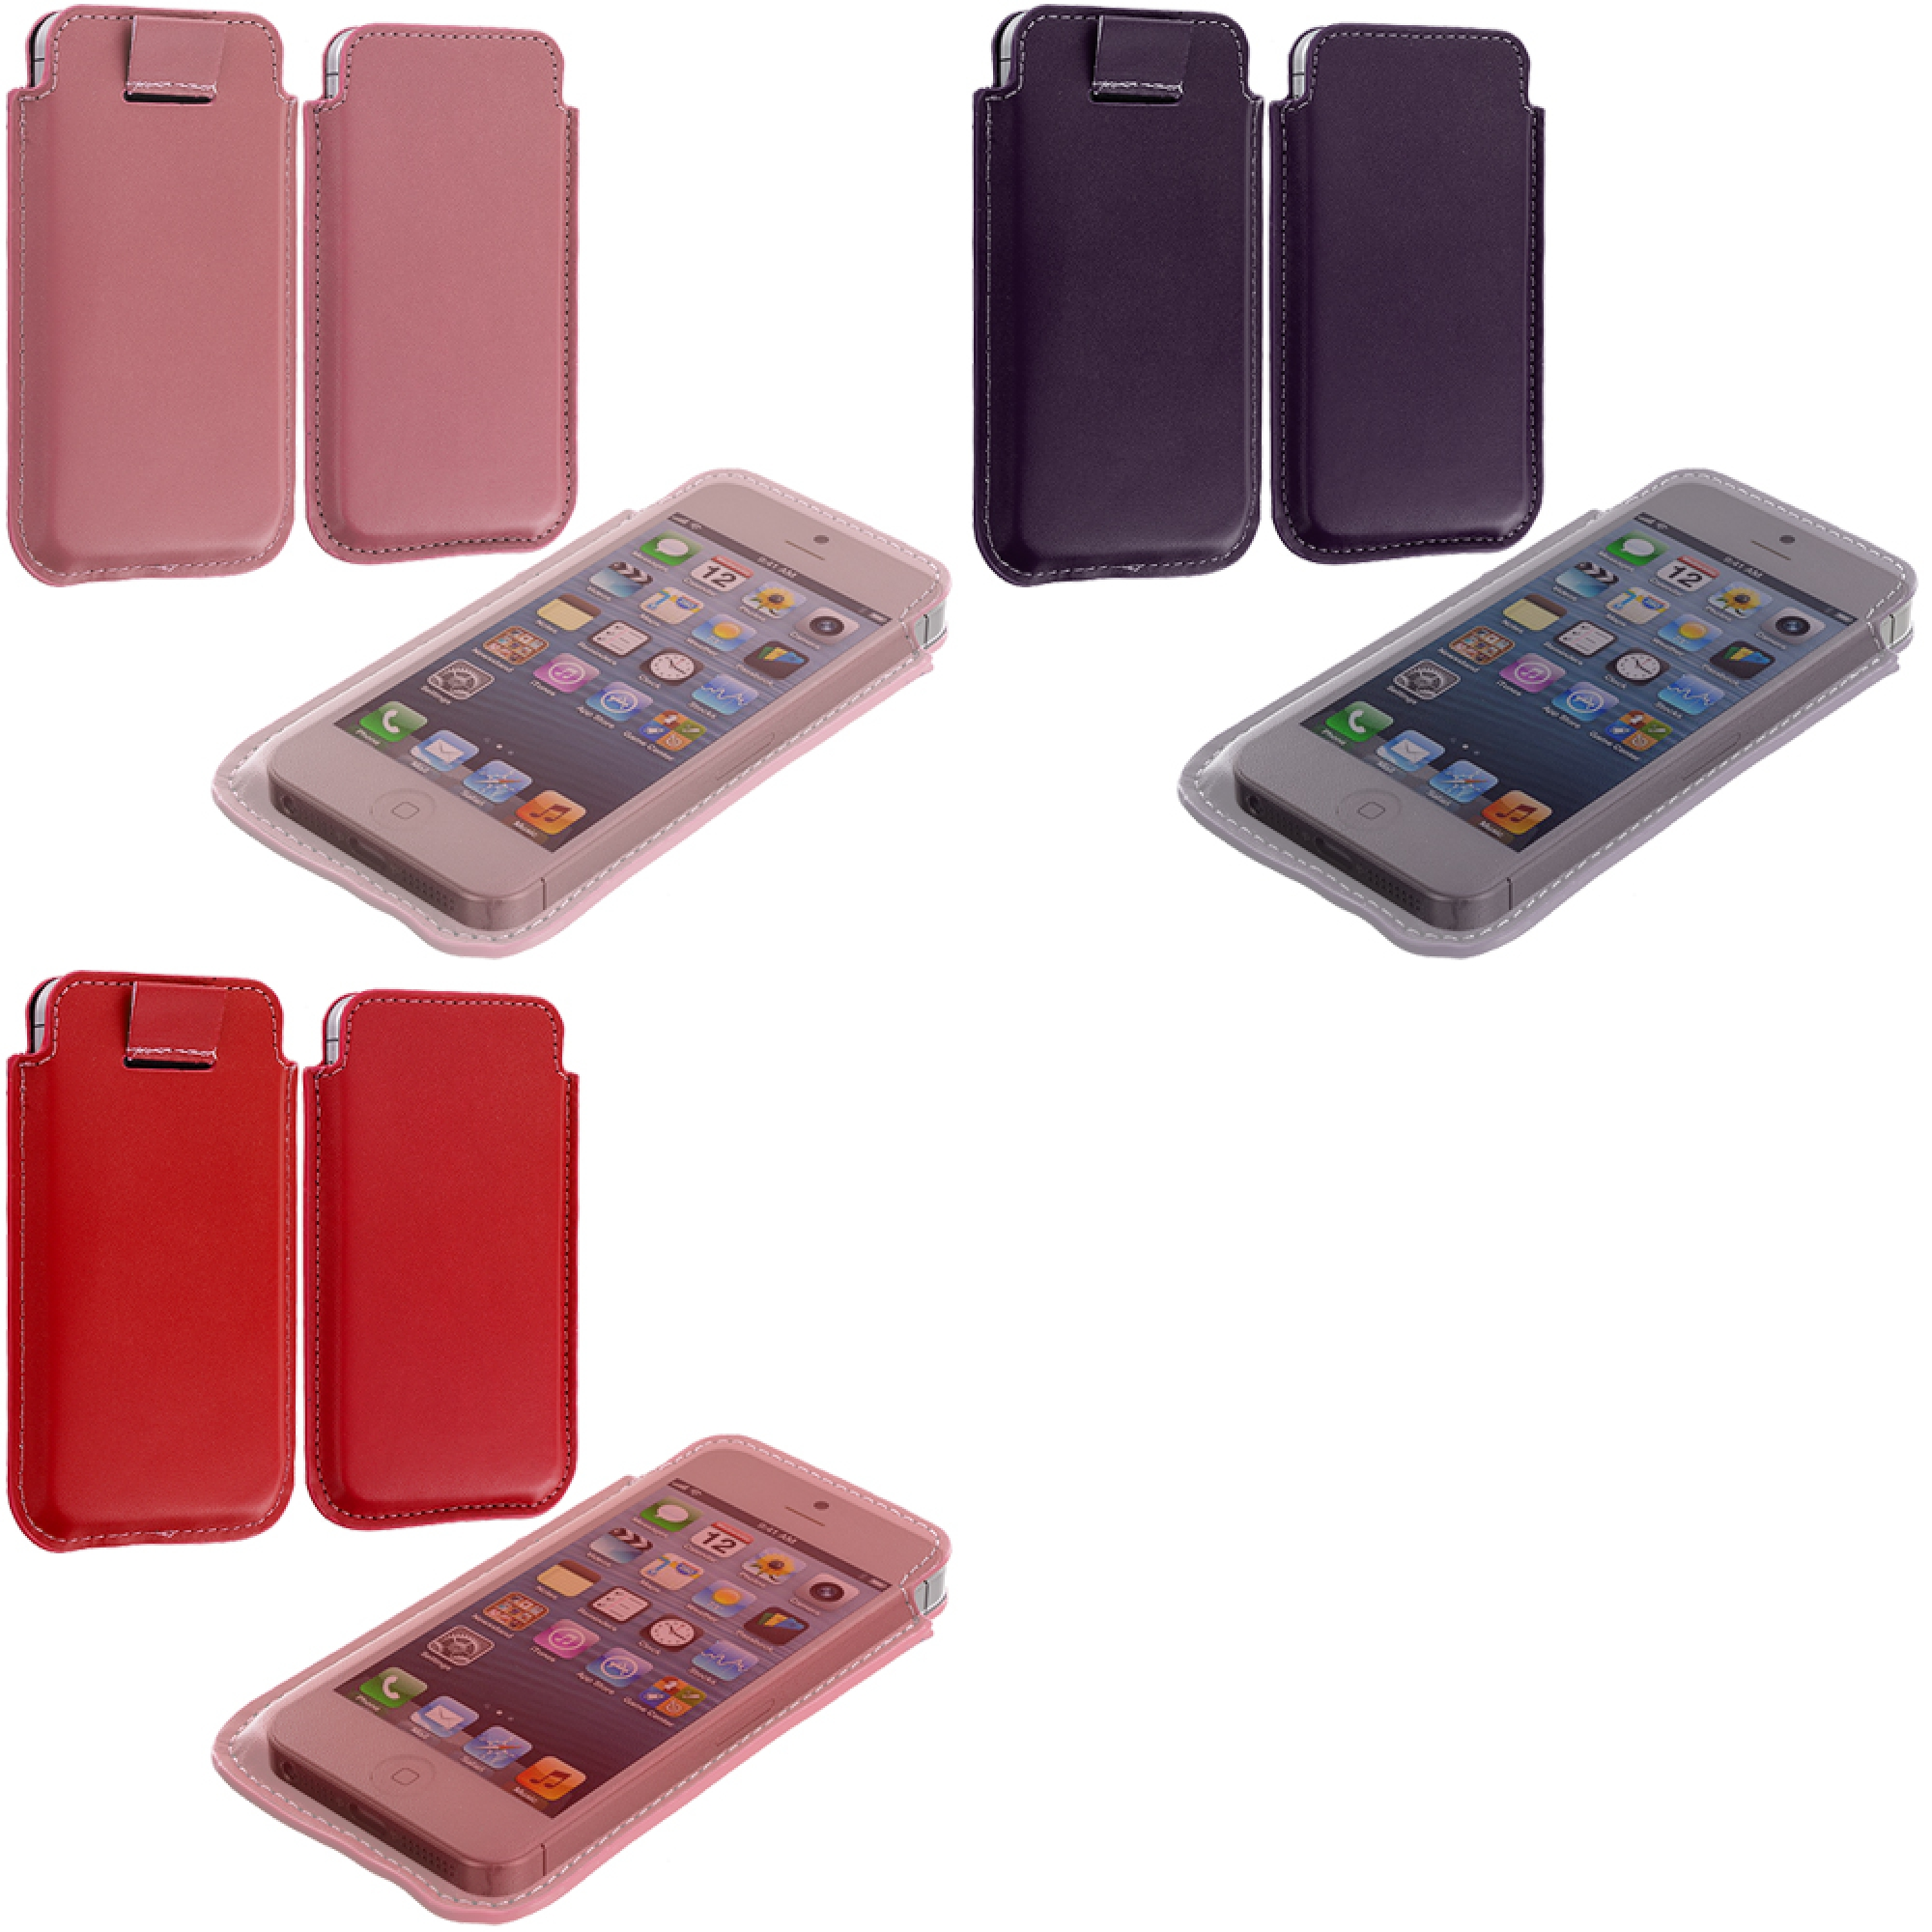 Apple iPhone 5/5S/SE Combo Pack : Pink Sleeve Pouch